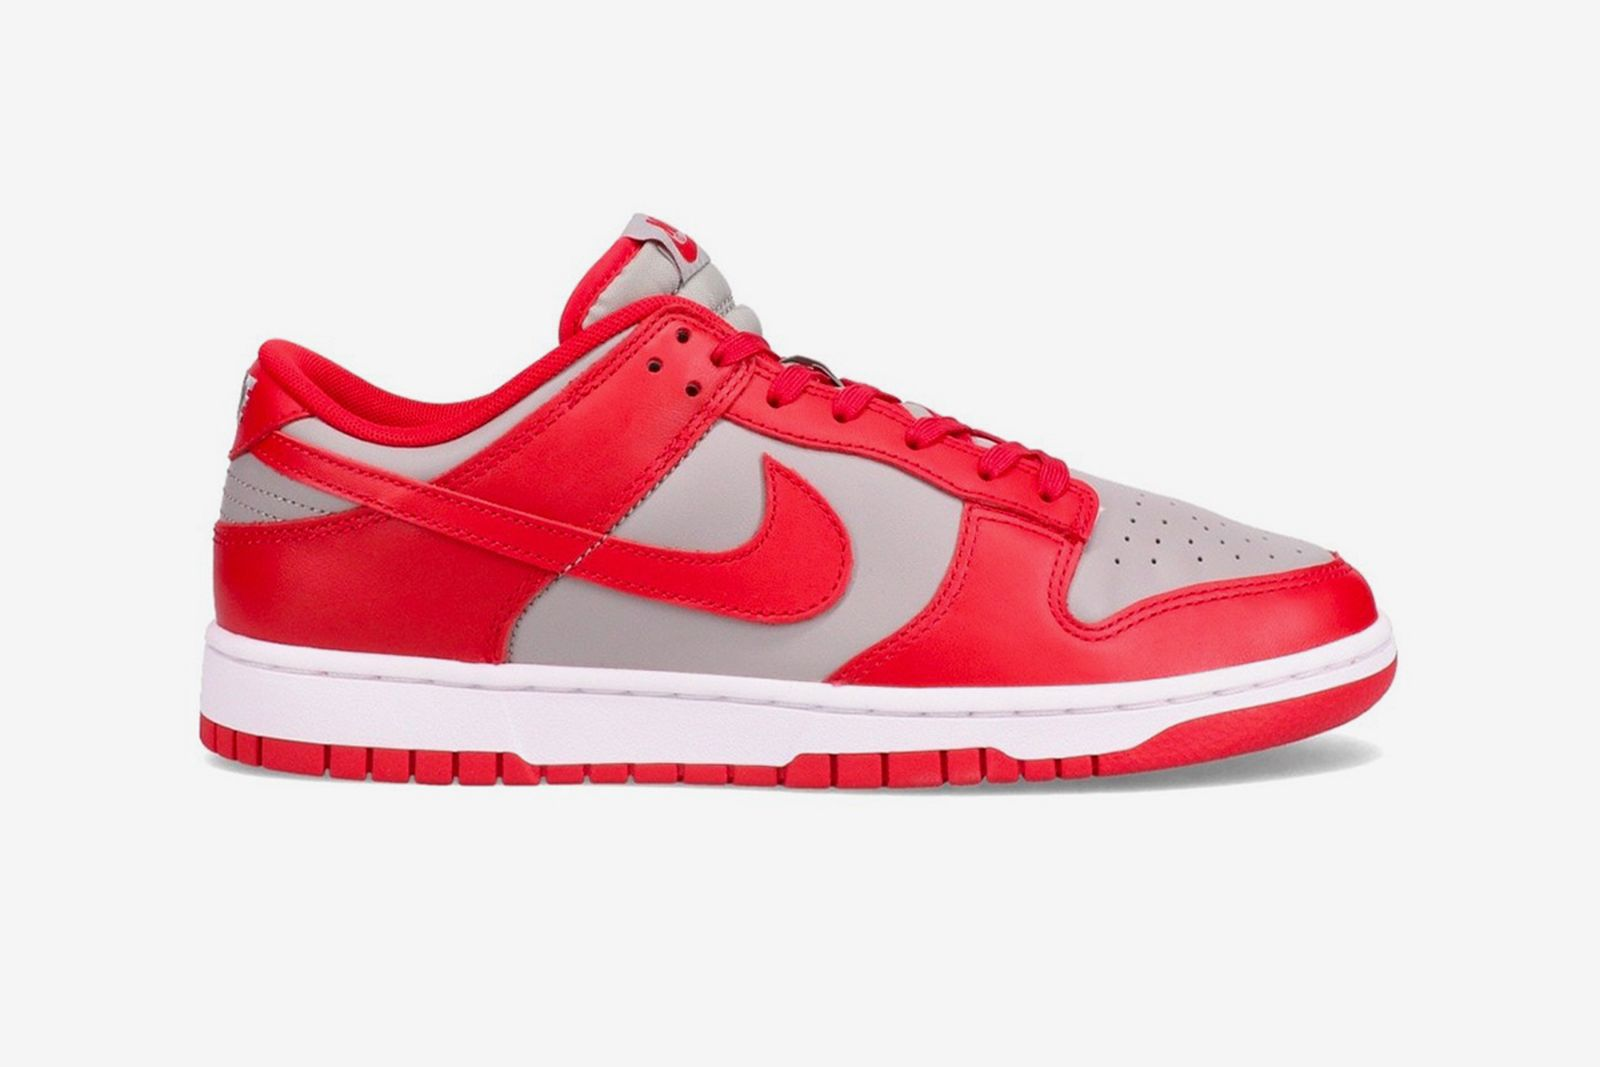 nike-dunks-january-2021-release-date-price-06